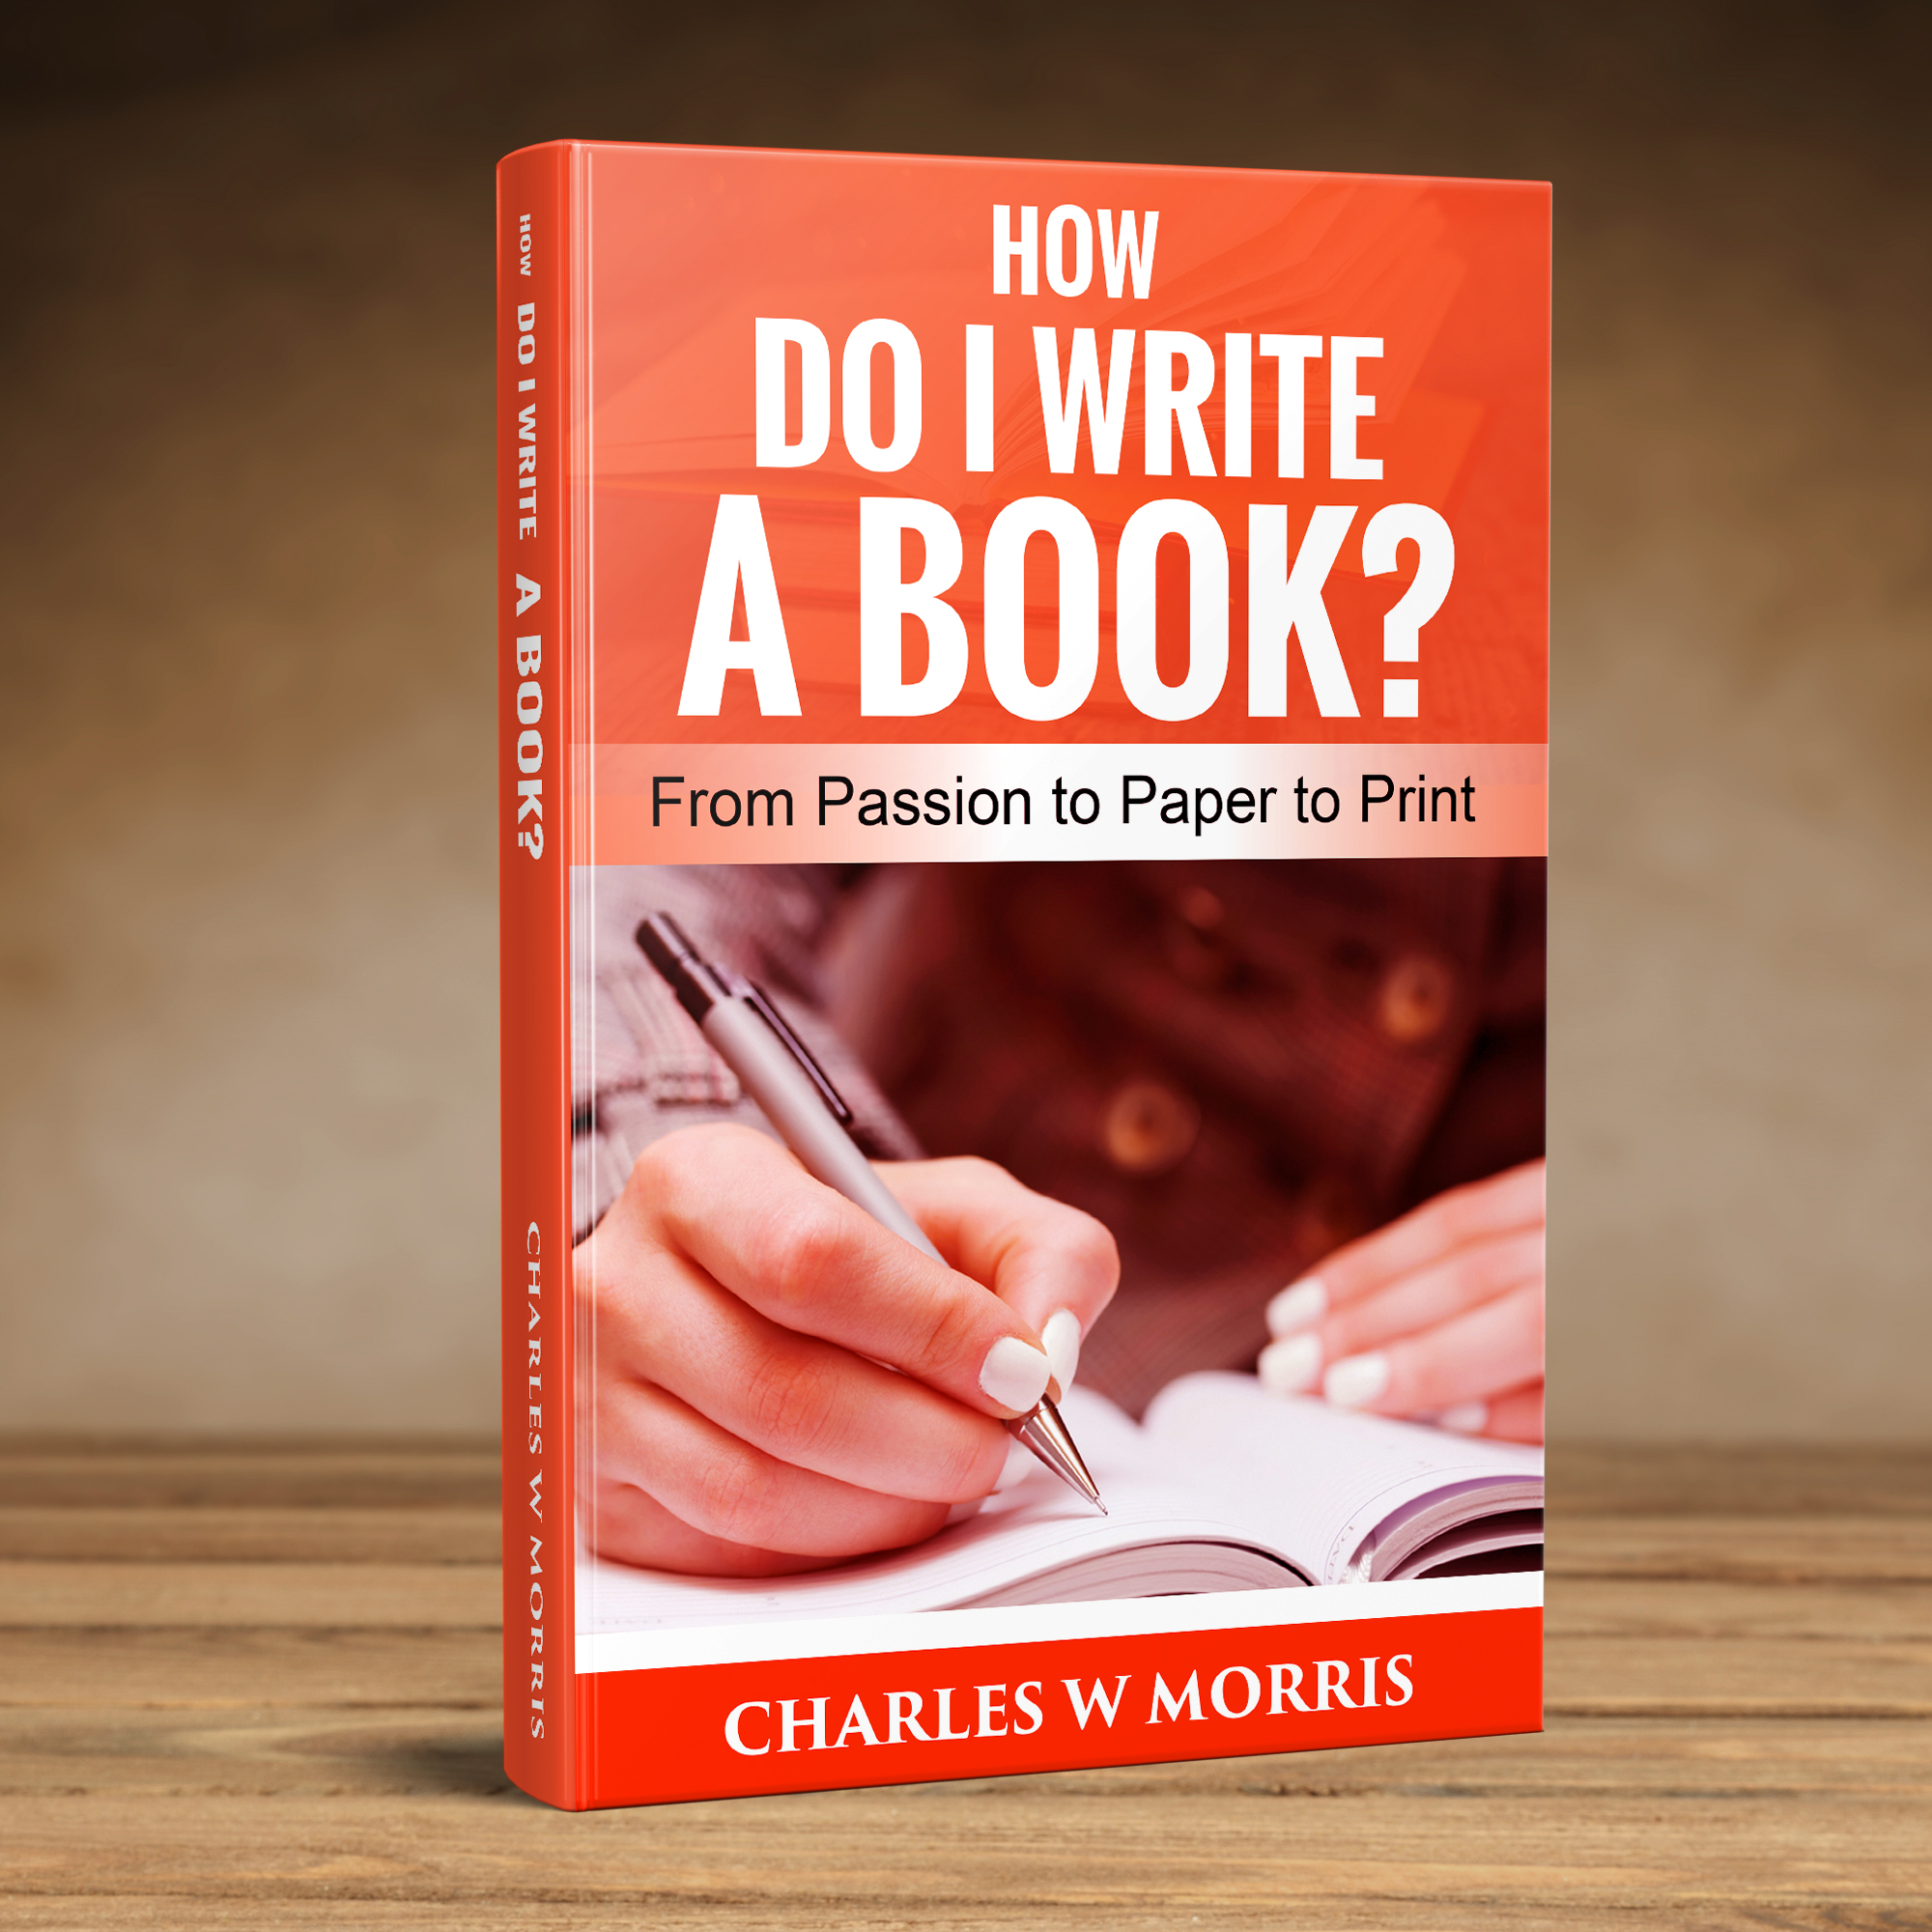 HOW DO I WRITE A BOOK 3D